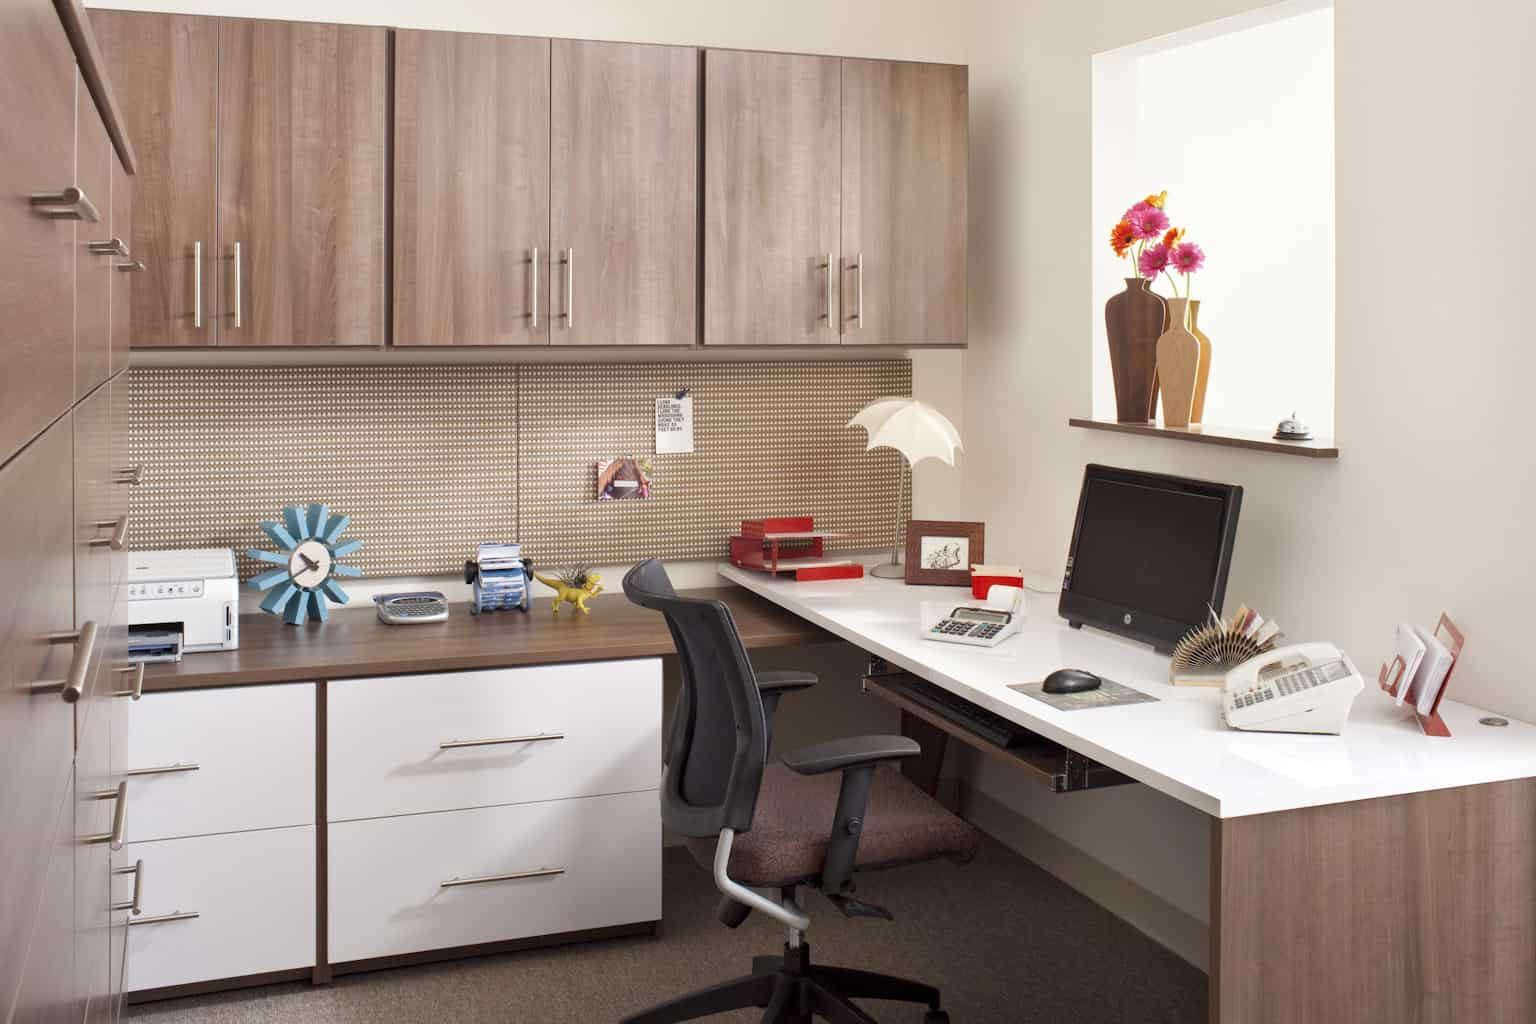 Here's an example of turning a small room into a great home office with large desk and plenty of office storage.